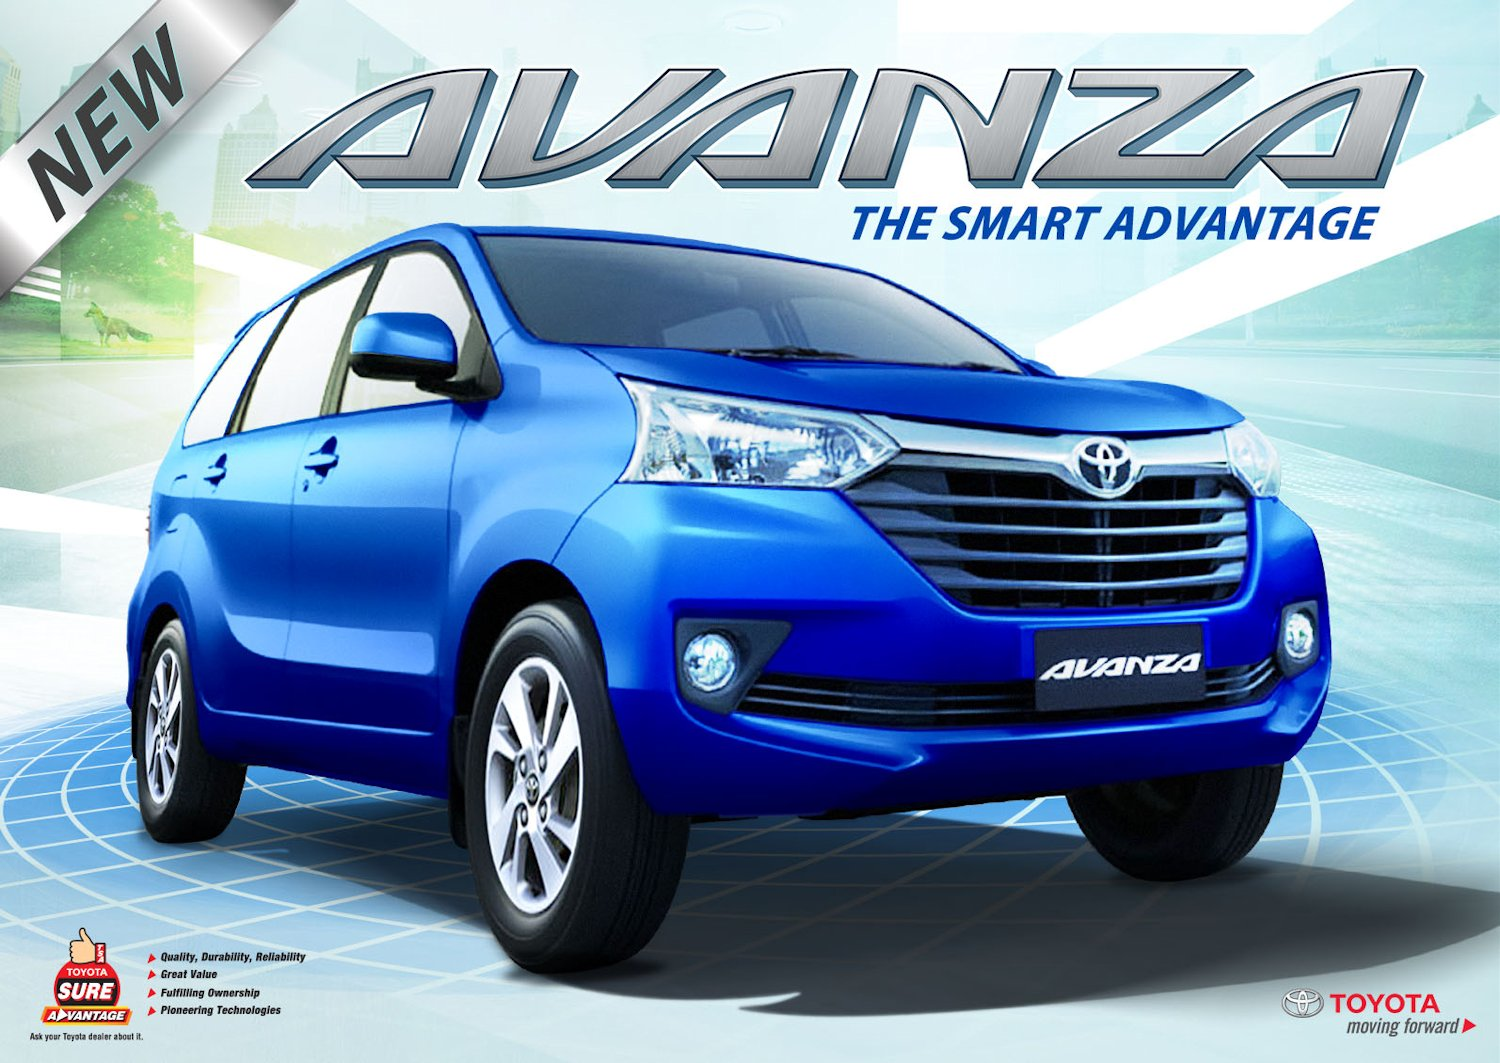 Grand All New Avanza 2016 Pakai Pertalite Toyota Motor Philippines Offers Smart Advantage With 2015